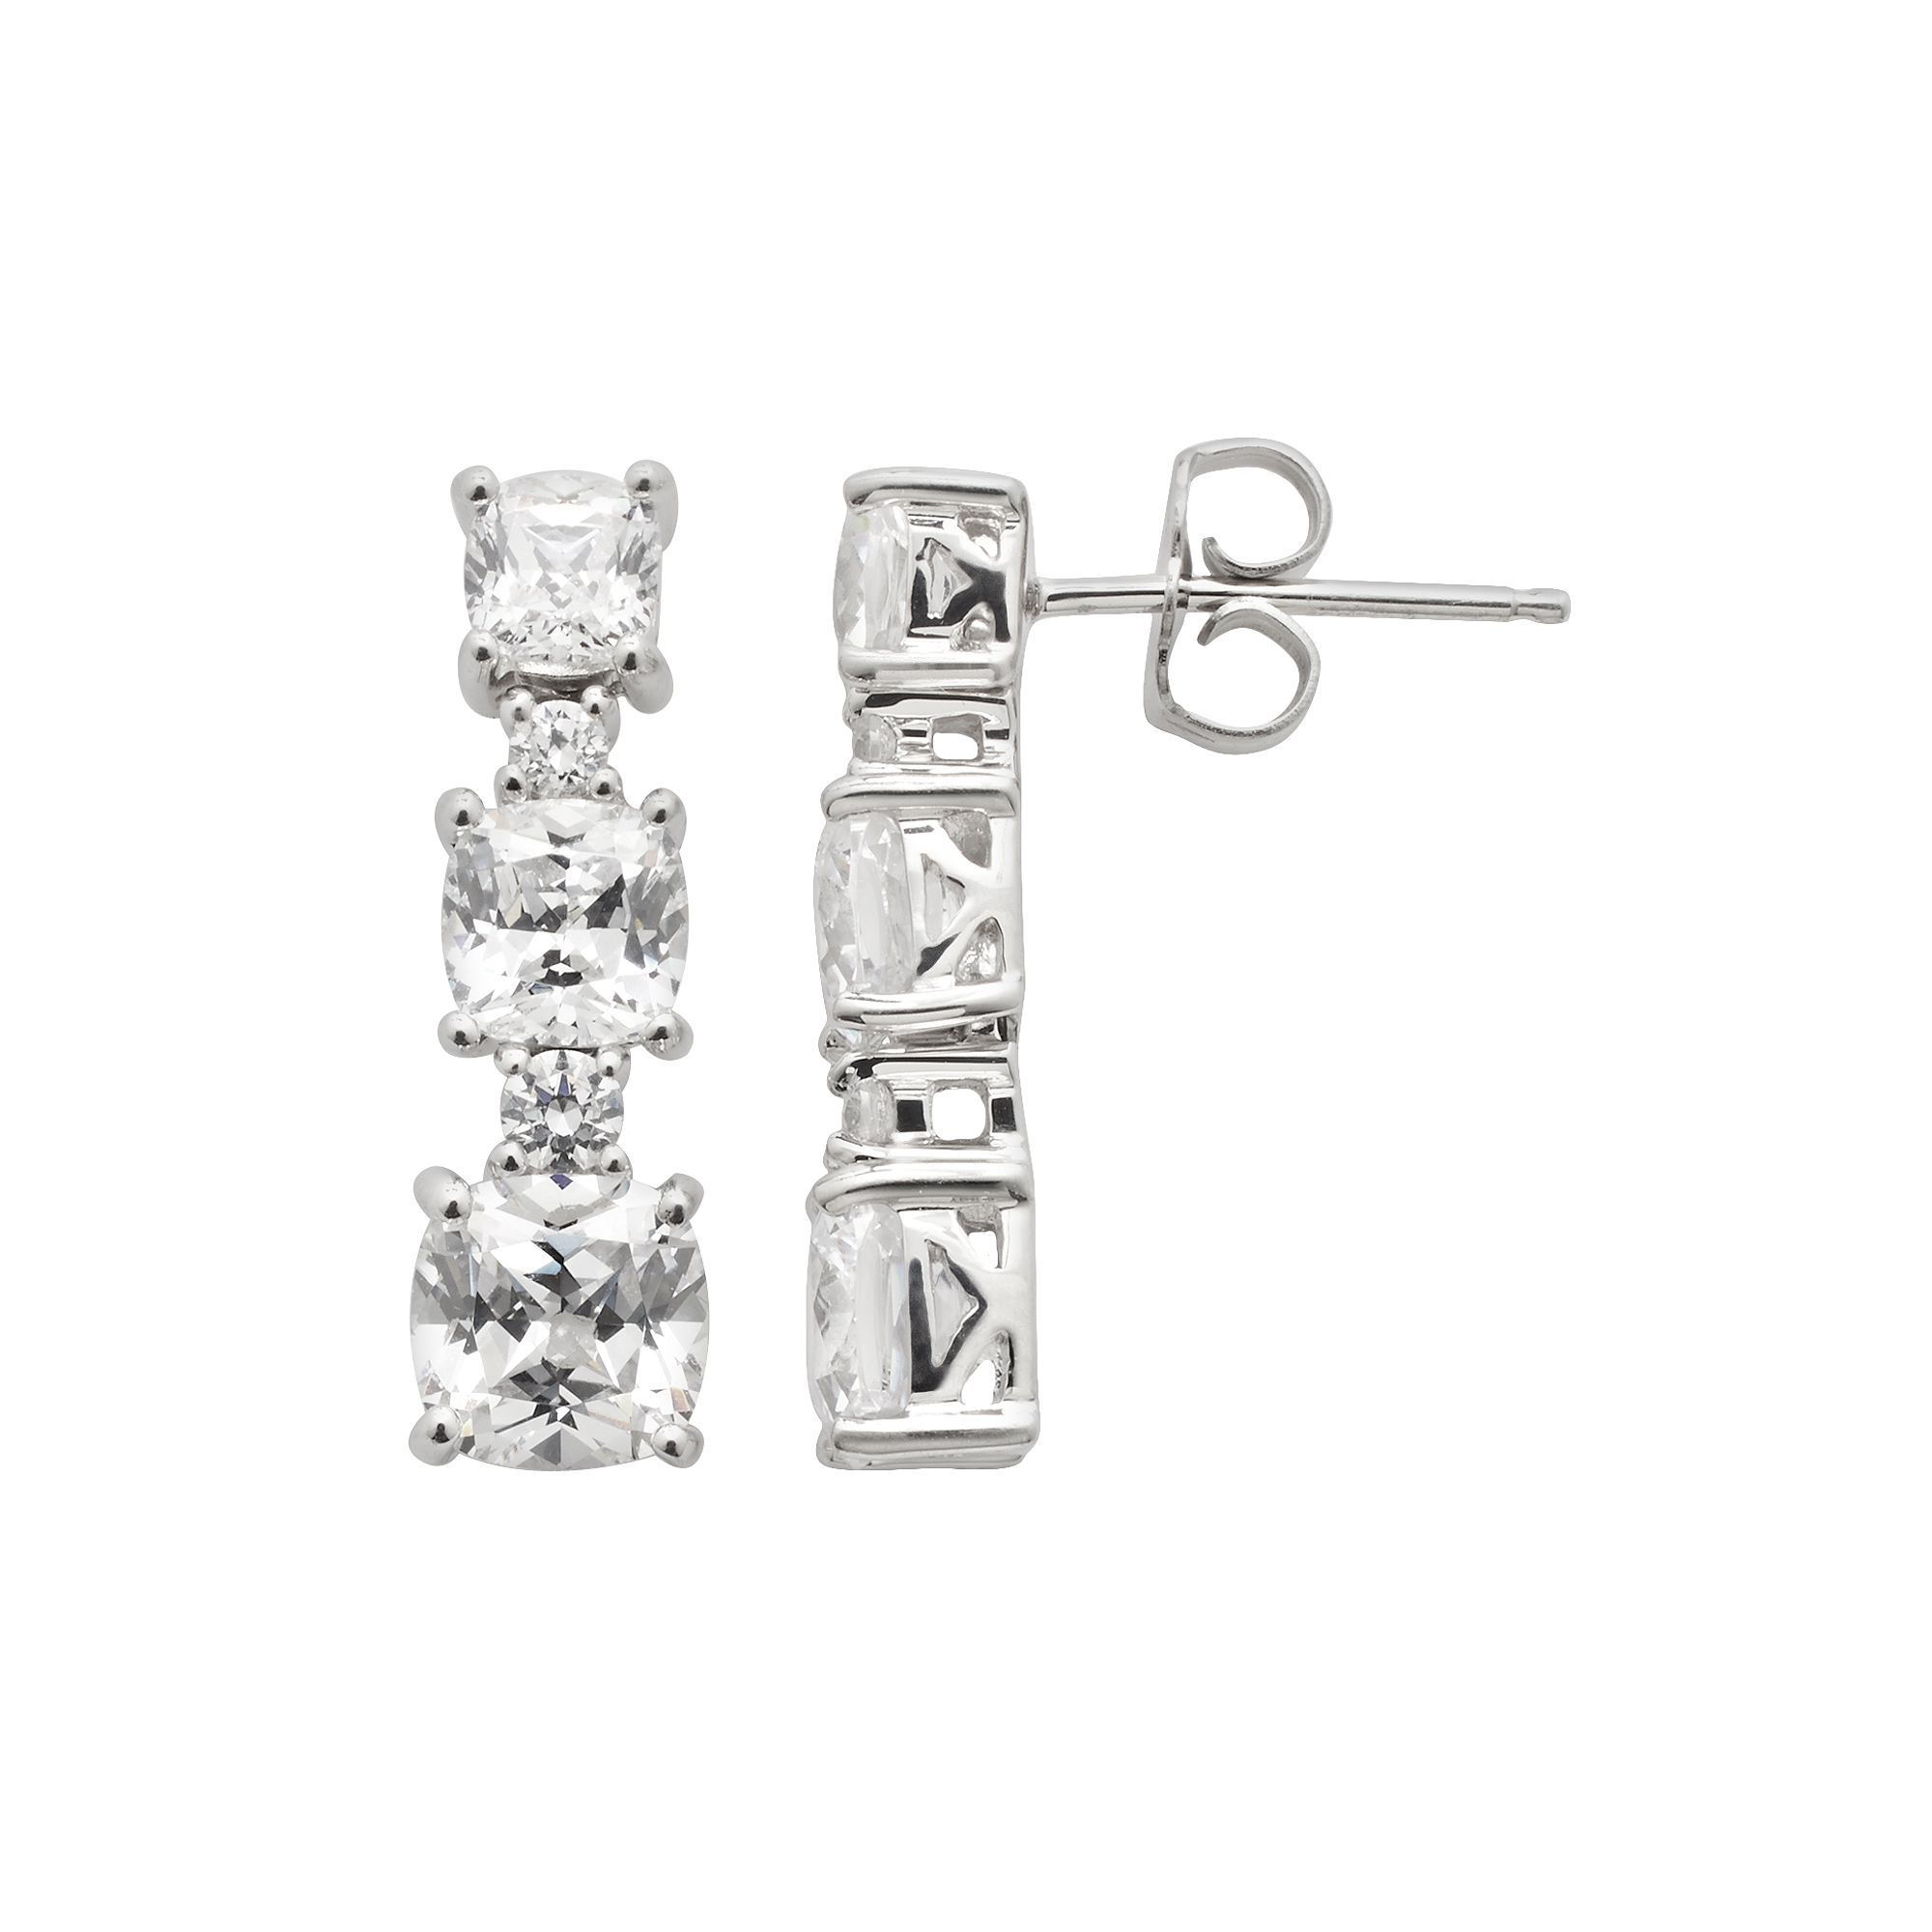 2f9e171f3 Emotions Sterling Silver Linear Drop Earrings - Made with Swarovski Cubic  Zirconia, Women's, White